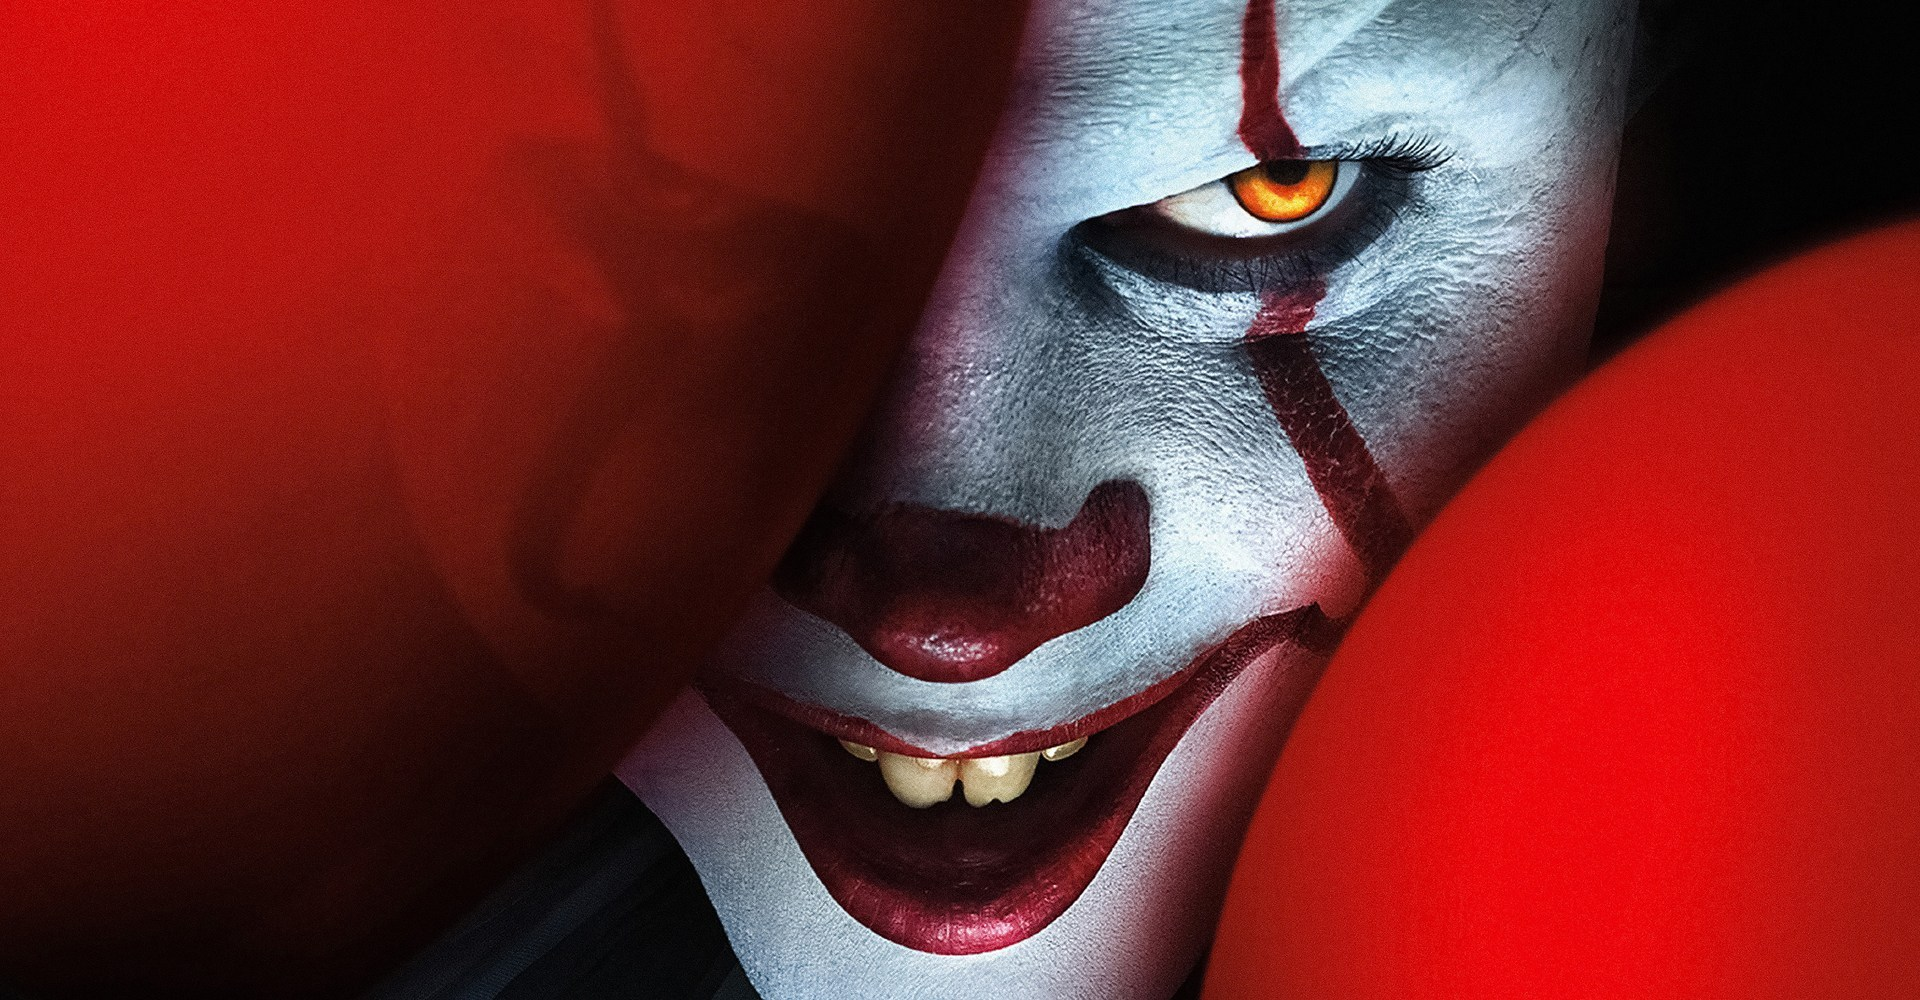 IT: Capitolo Due - L'apertura del film è da record